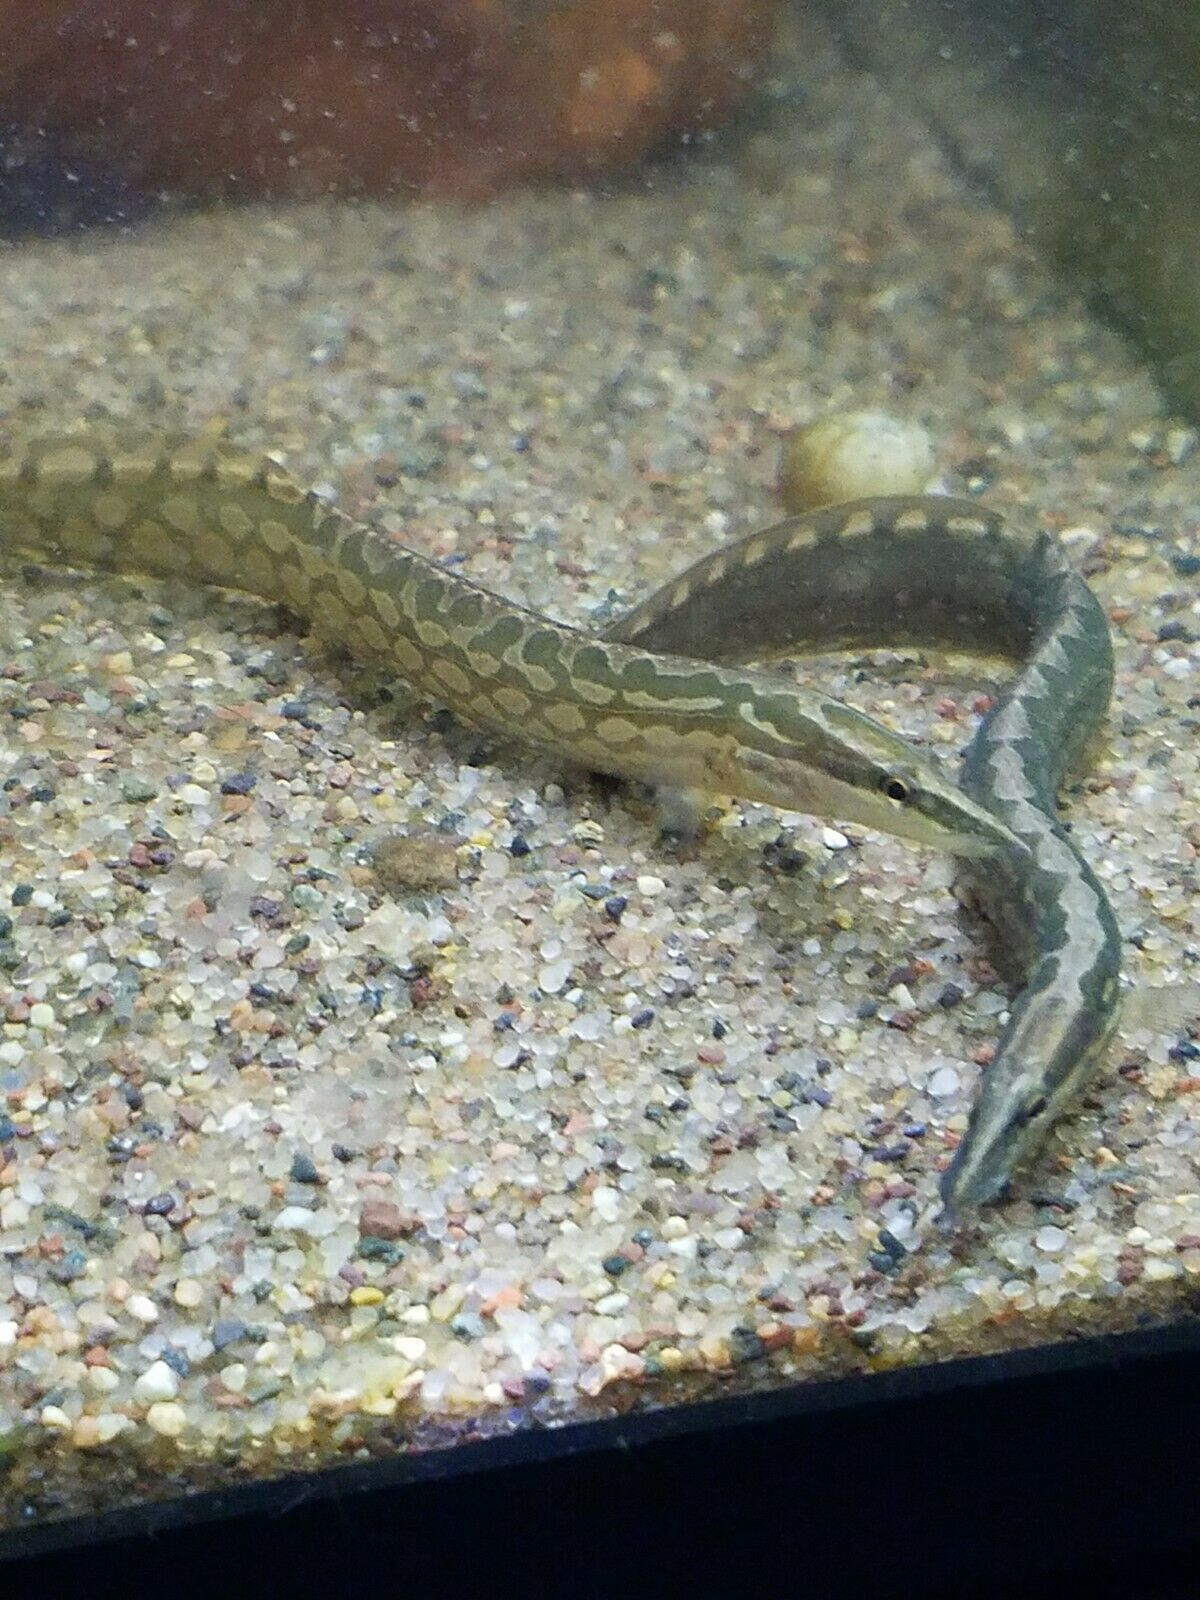 Tire Track Eel They Are Escape Artists So A Secure Lid Is